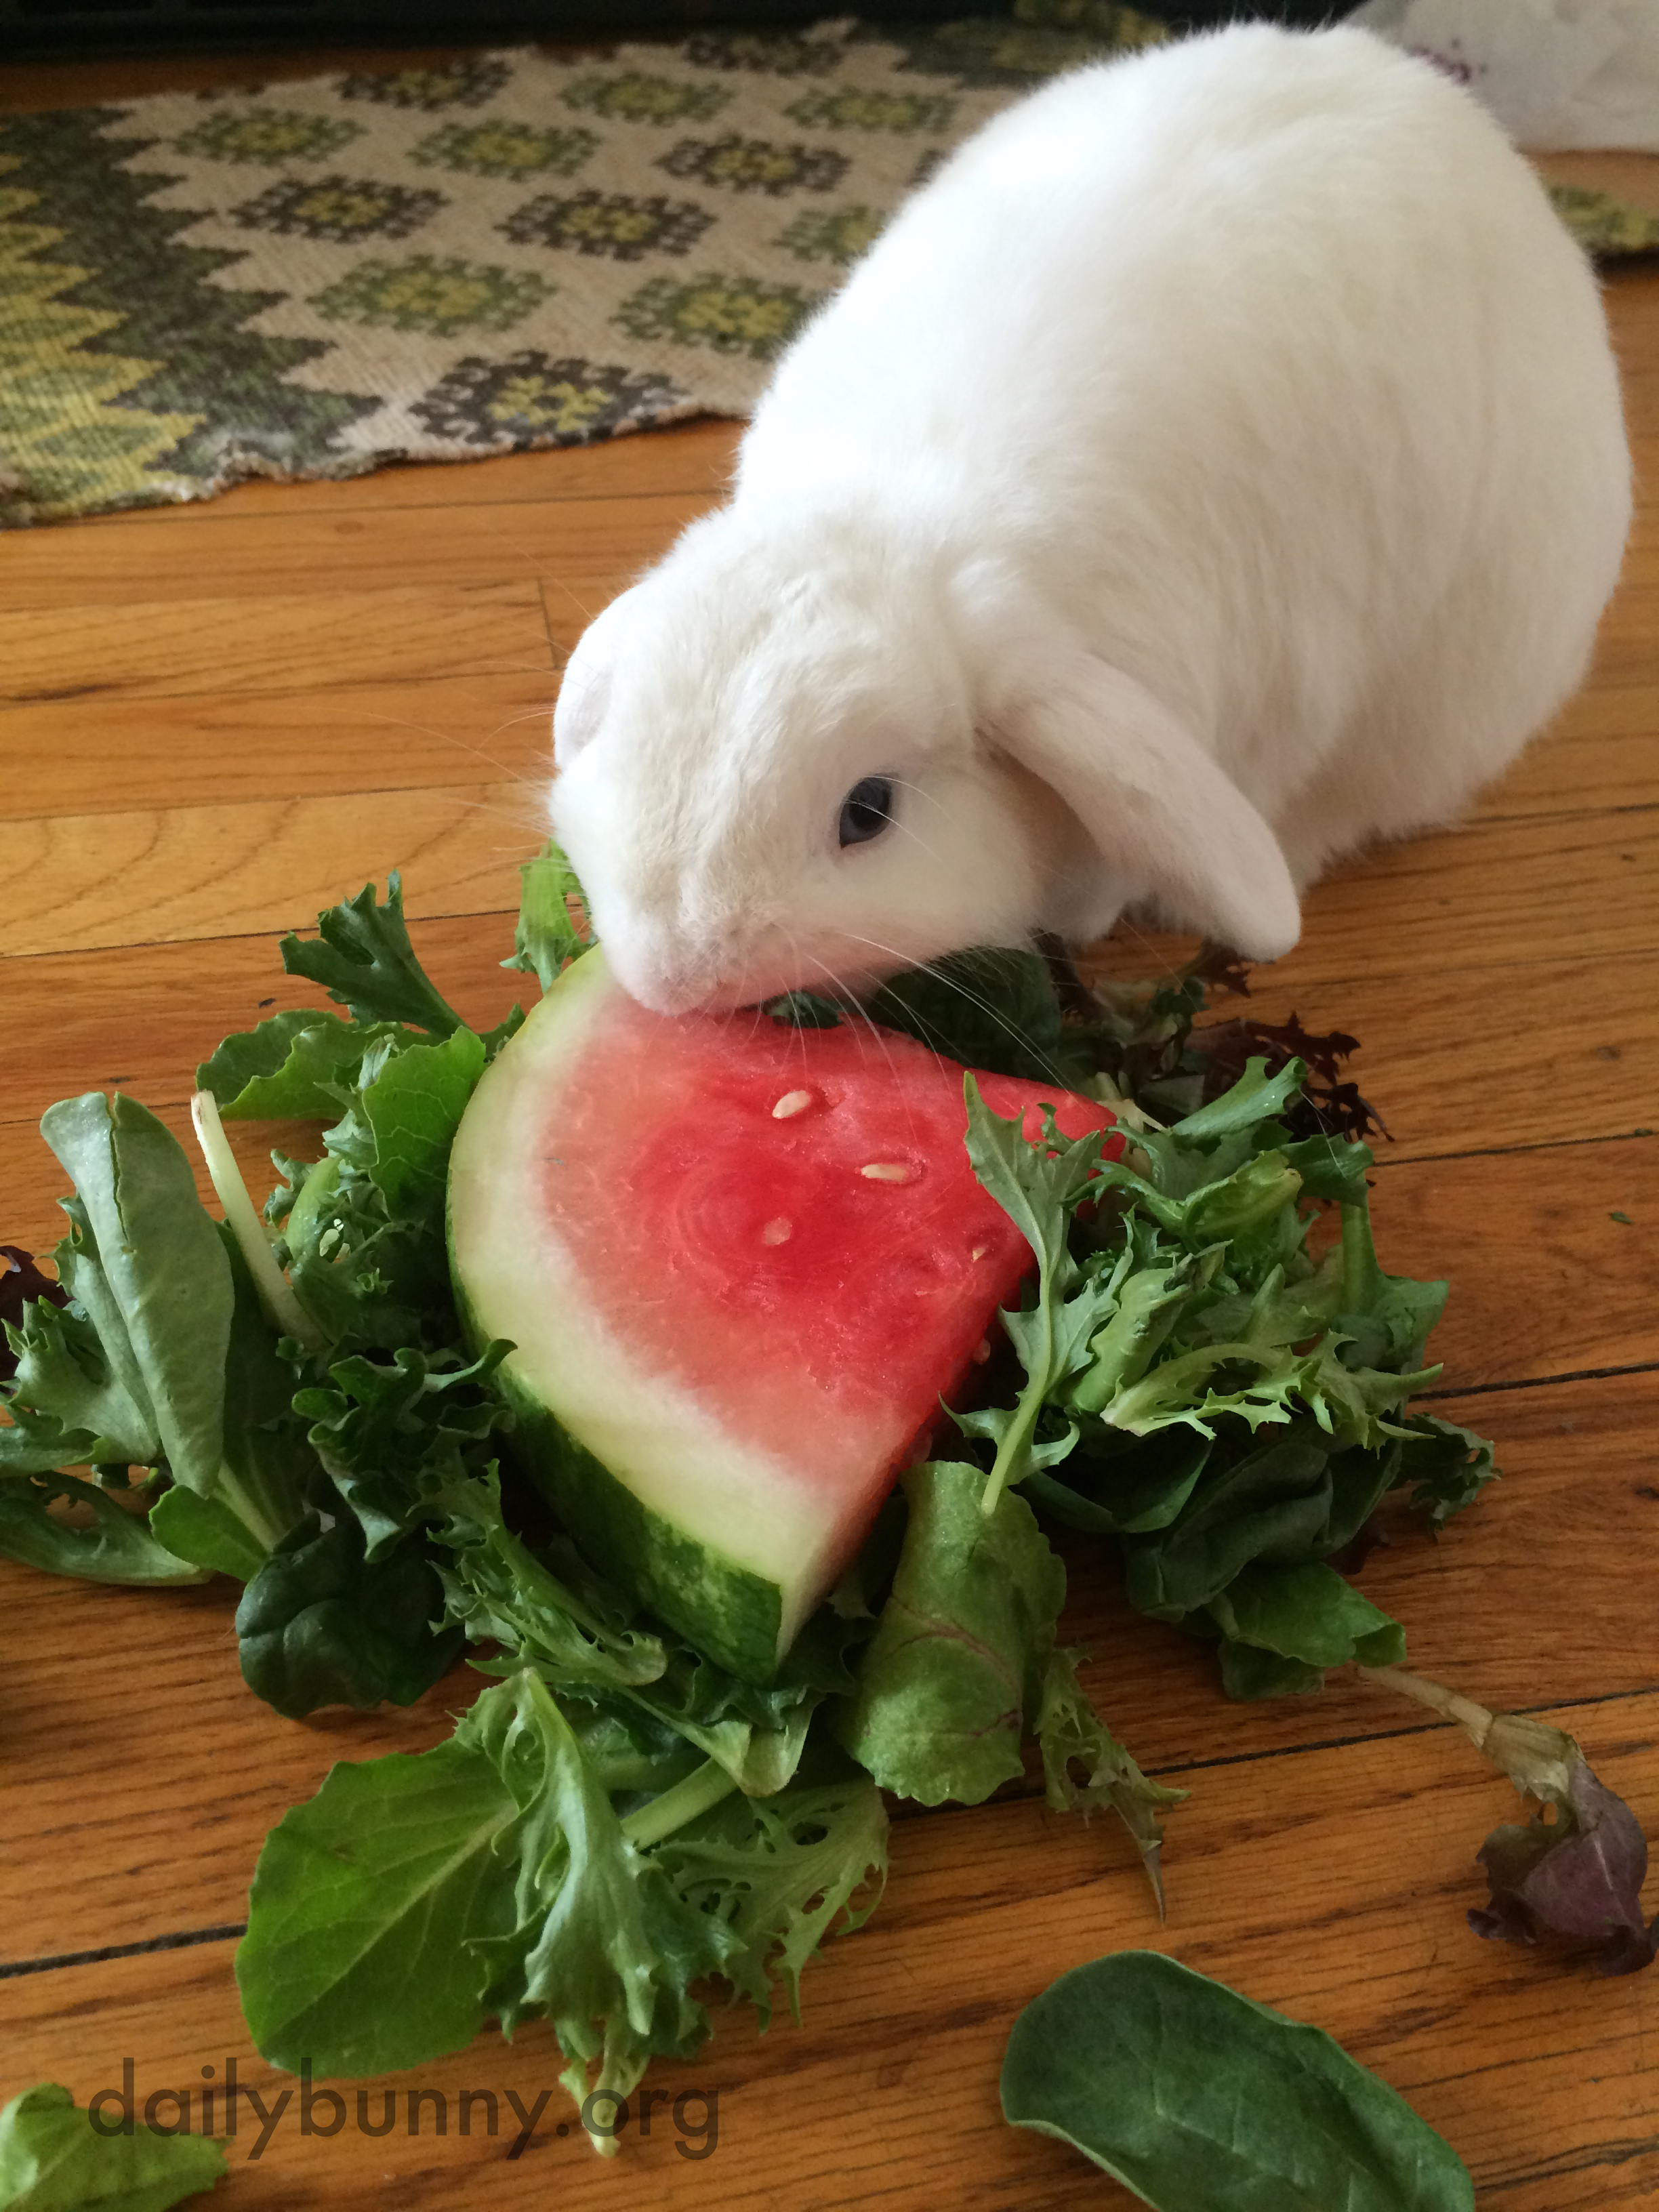 Bunny Enjoys a Bit of Watermelon Salad on a Hot Summer Day